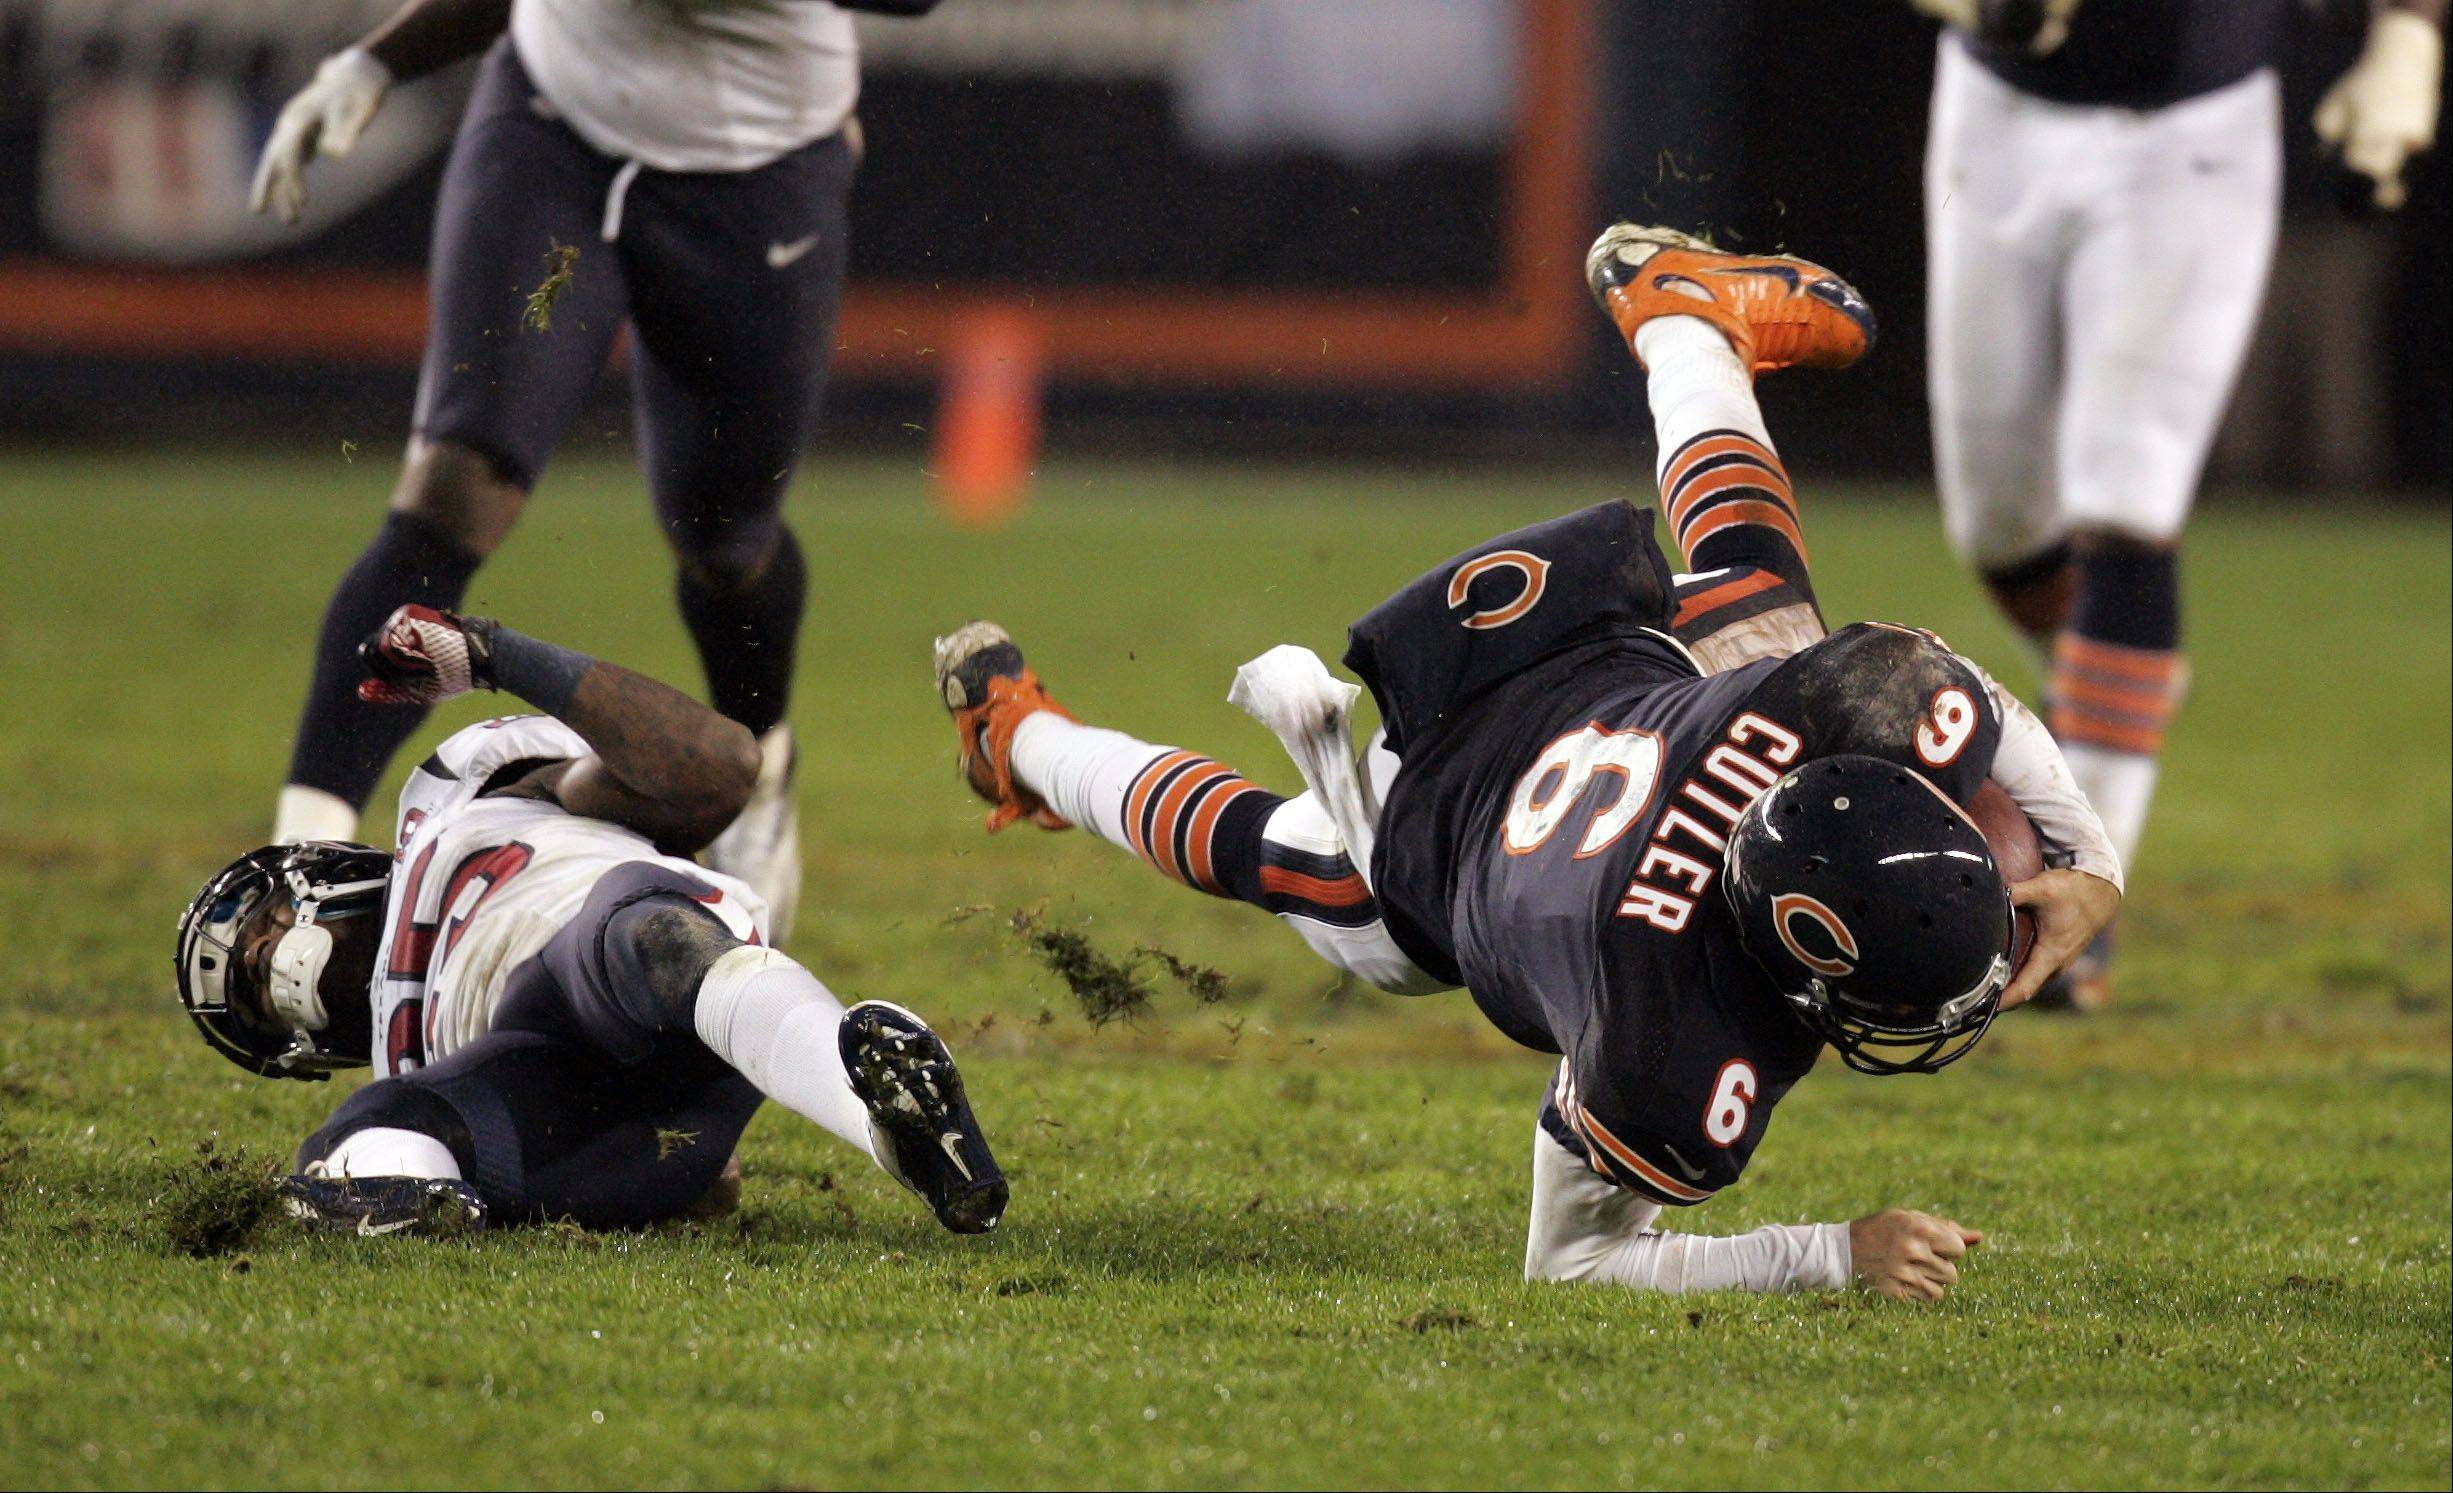 Chicago Bears quarterback Jay Cutler (6) gets hit hard by Houston Texans cornerback Kareem Jackson (25) late in the first half.